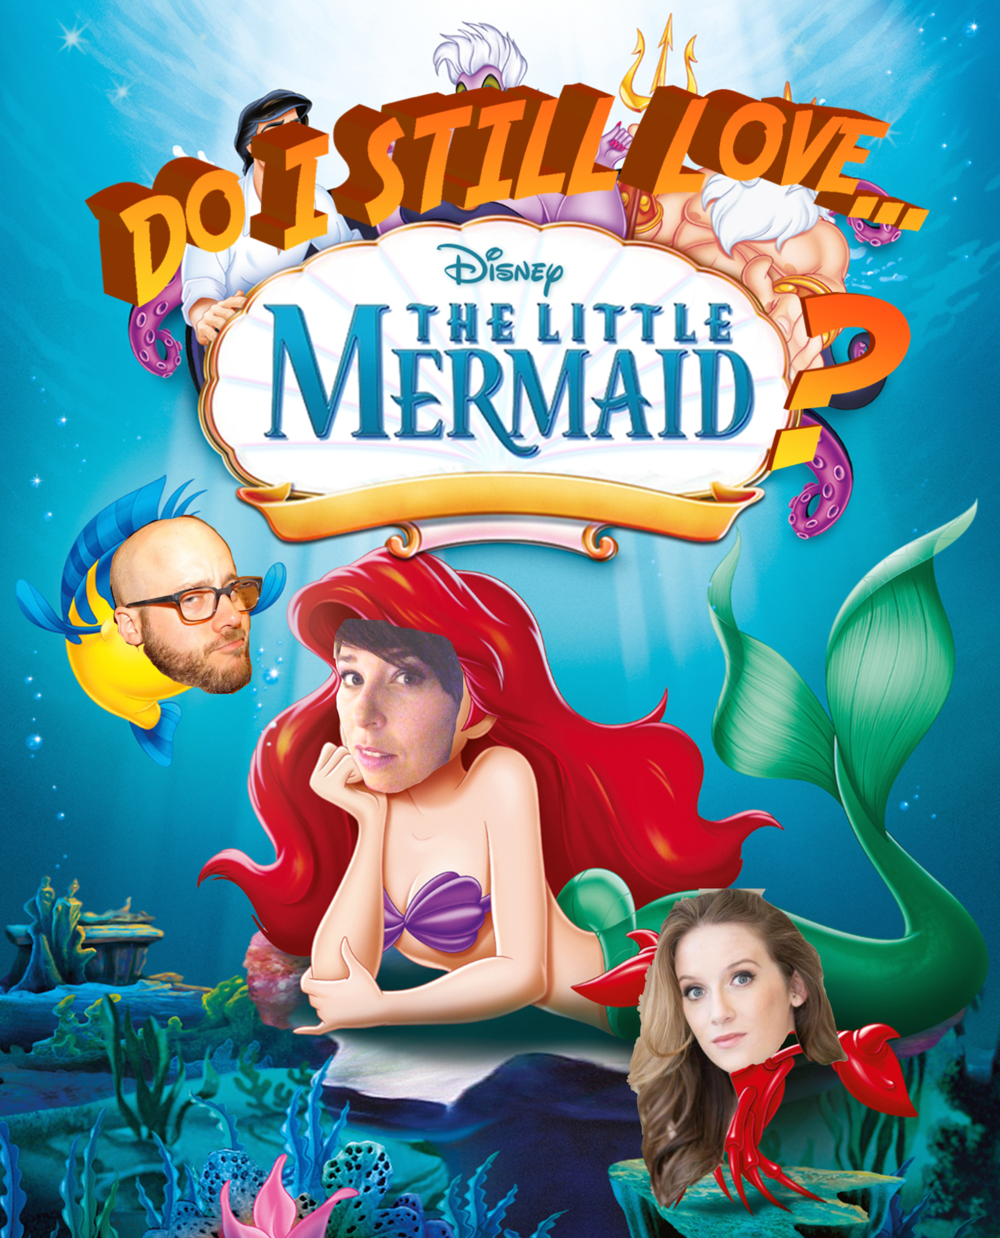 Do I Still Love the Little Mermaid?